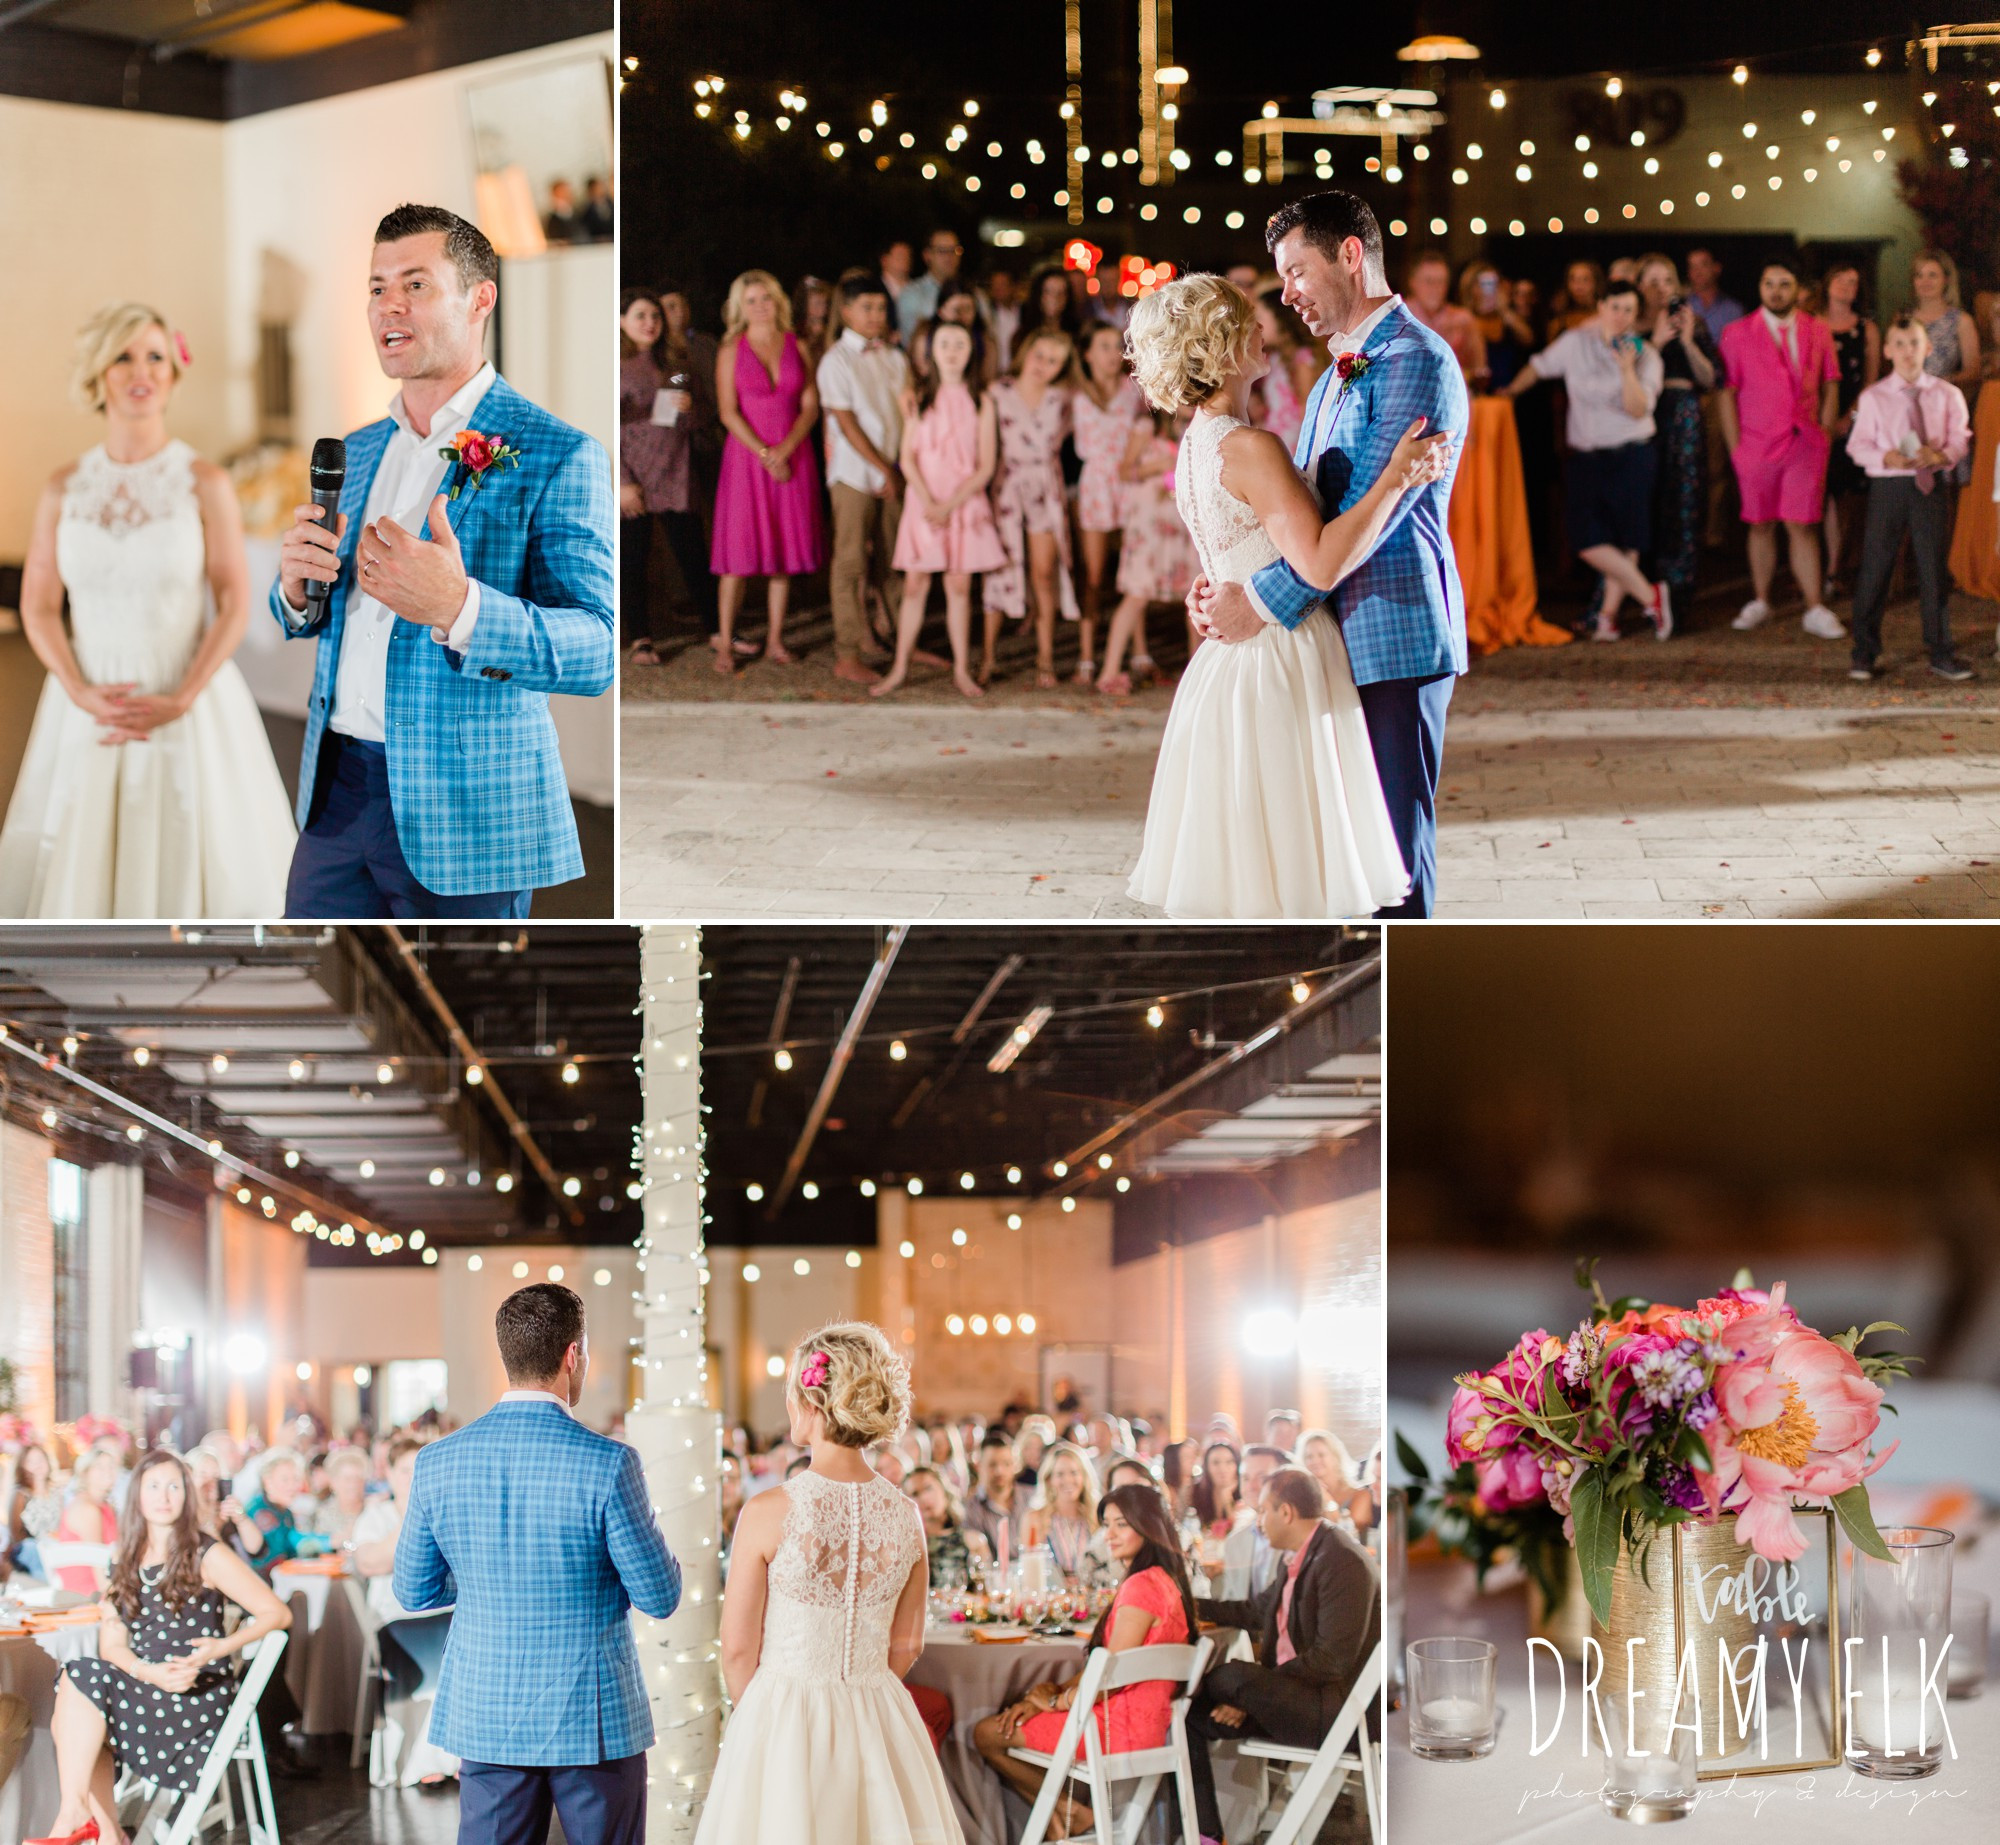 outdoor reception, spring colorful pink orange wedding photo, fort worth, texas, dreamy elk photography and design, jen rios weddings, le force dj